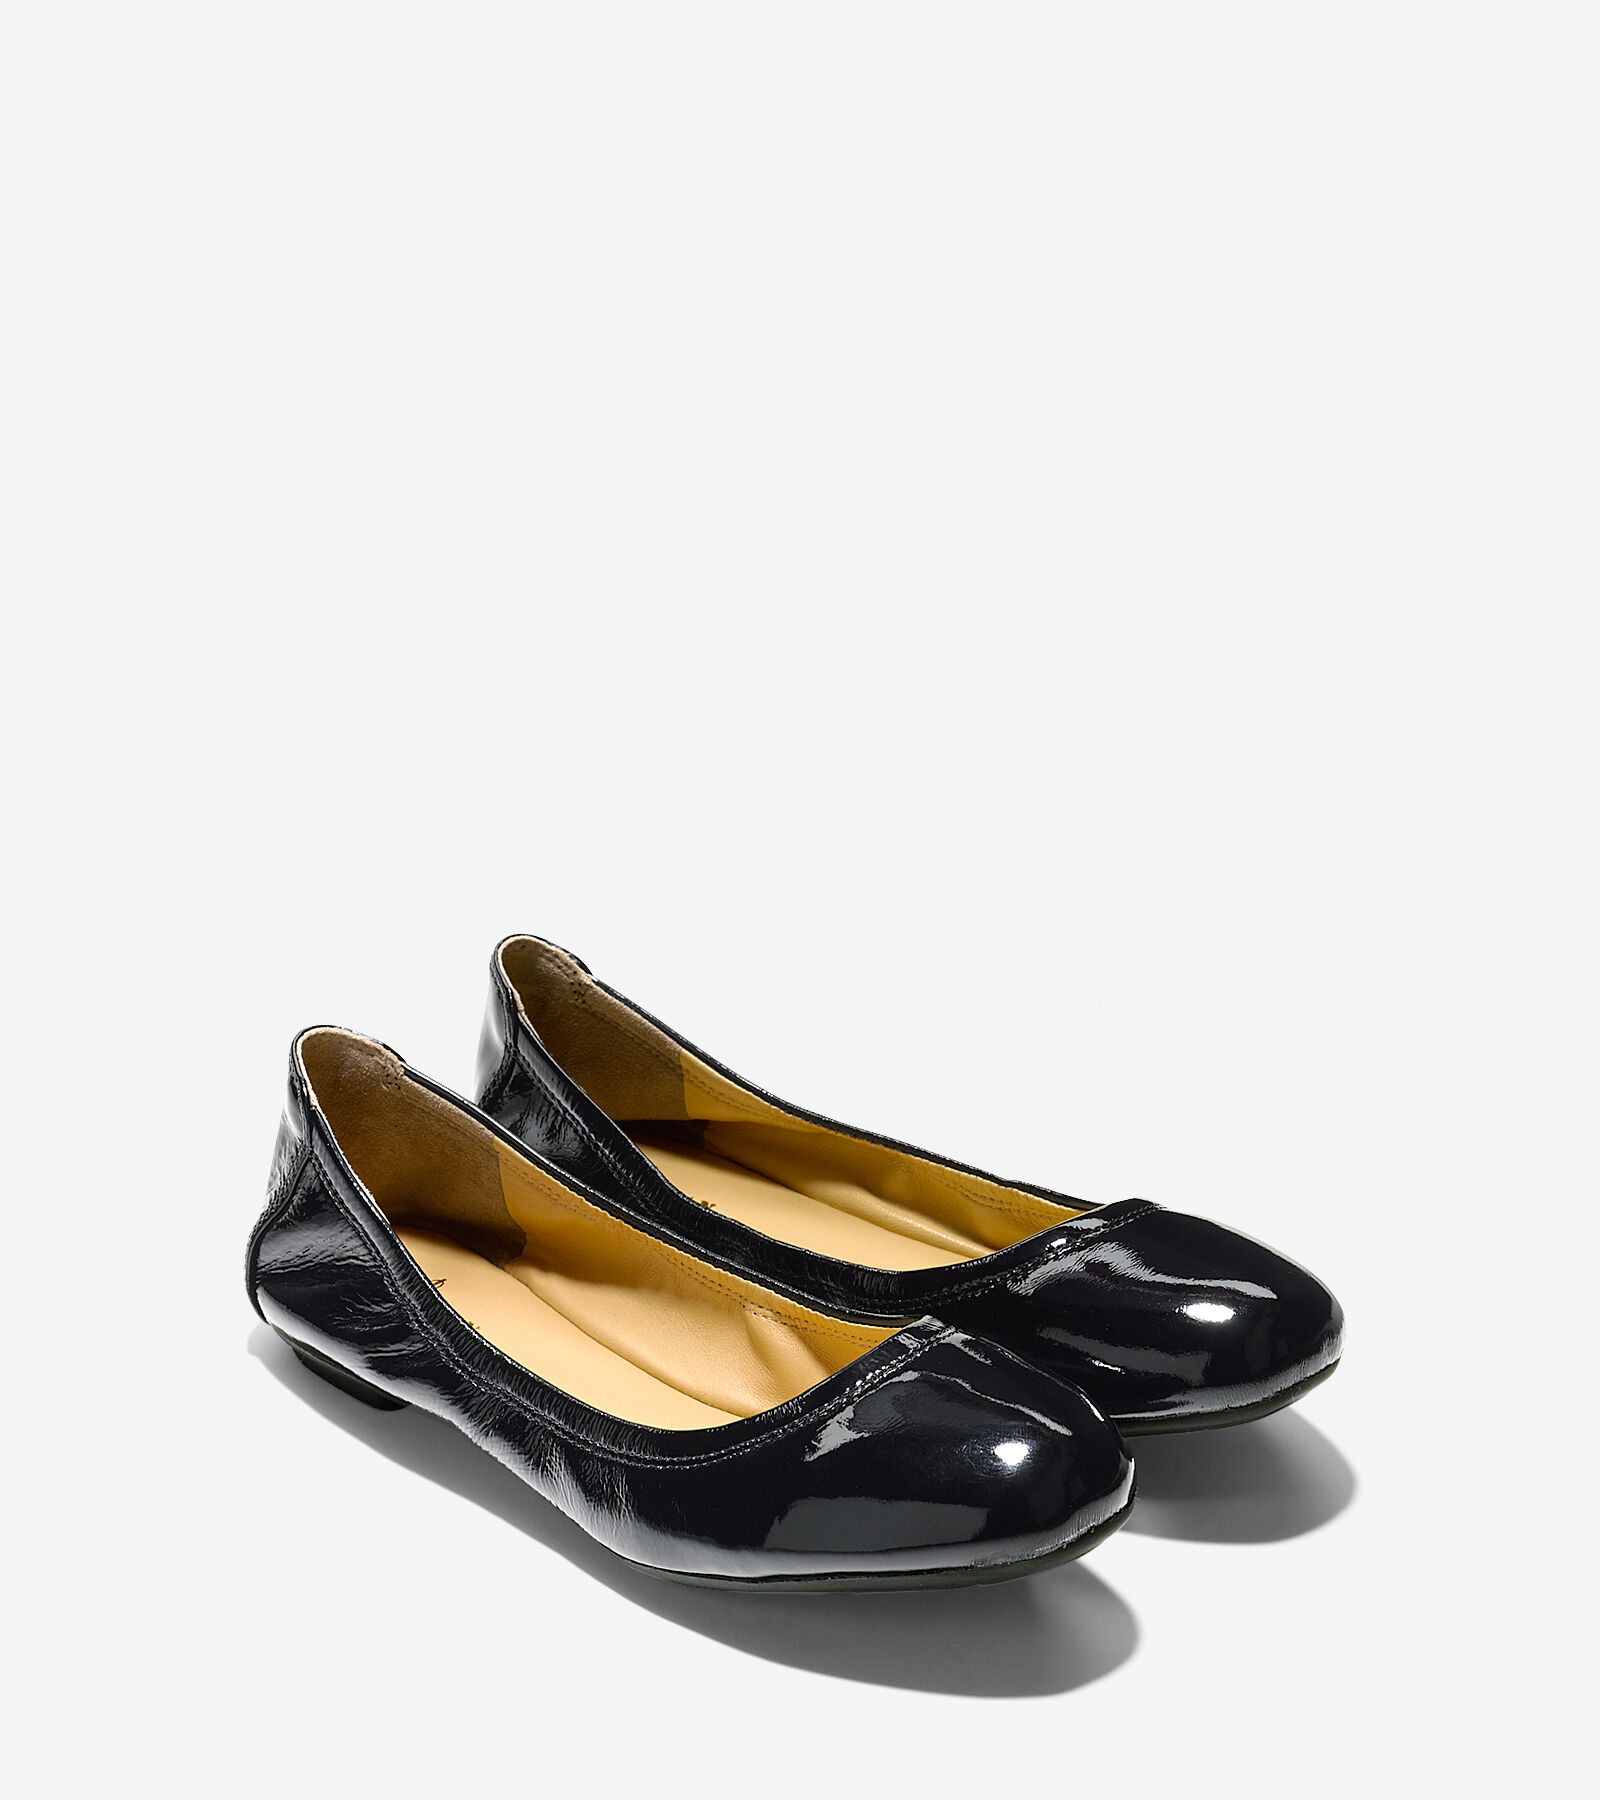 free shipping largest supplier manchester great sale cheap online Cole Haan Patent Leather Round-Toe Flats outlet eastbay really sale online XEdto7sj3